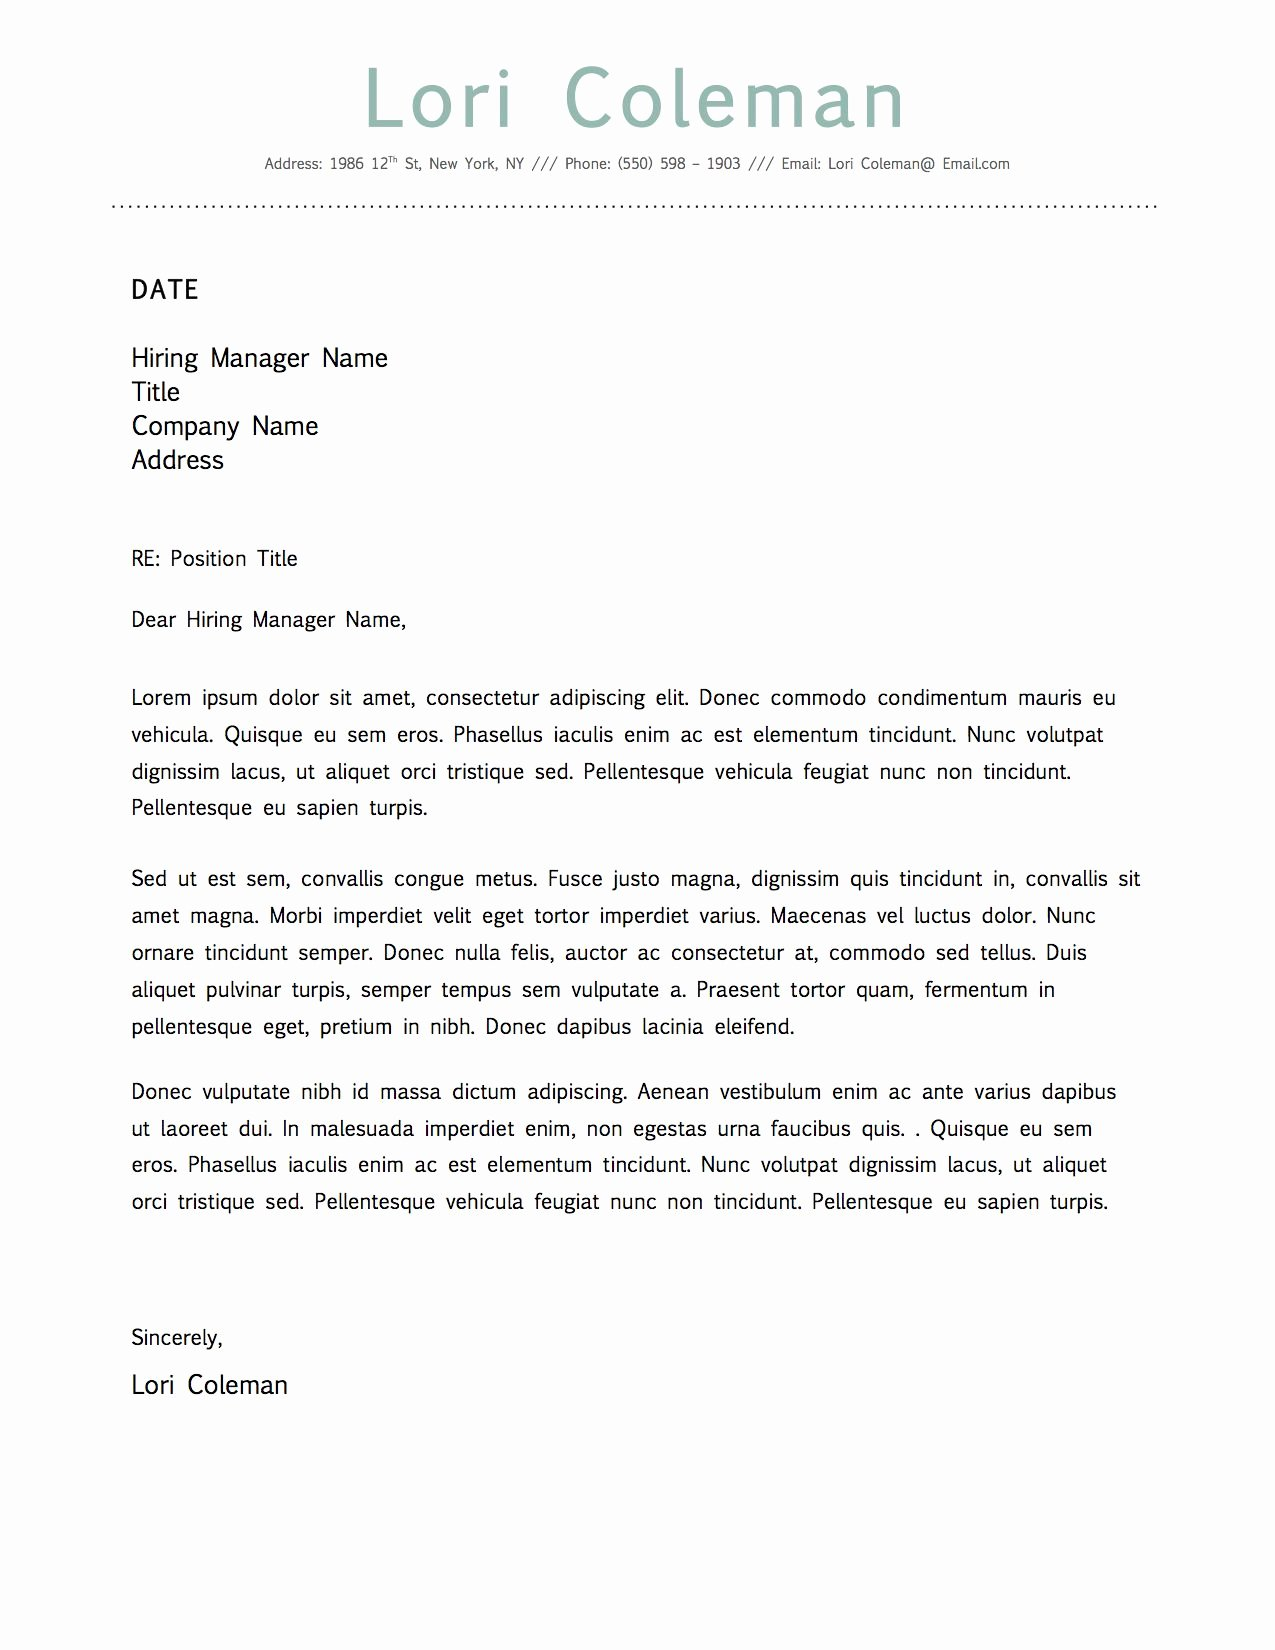 Cover Letter format Word Lovely Simple Beautiful Cover Letter Template for Microsoft Word